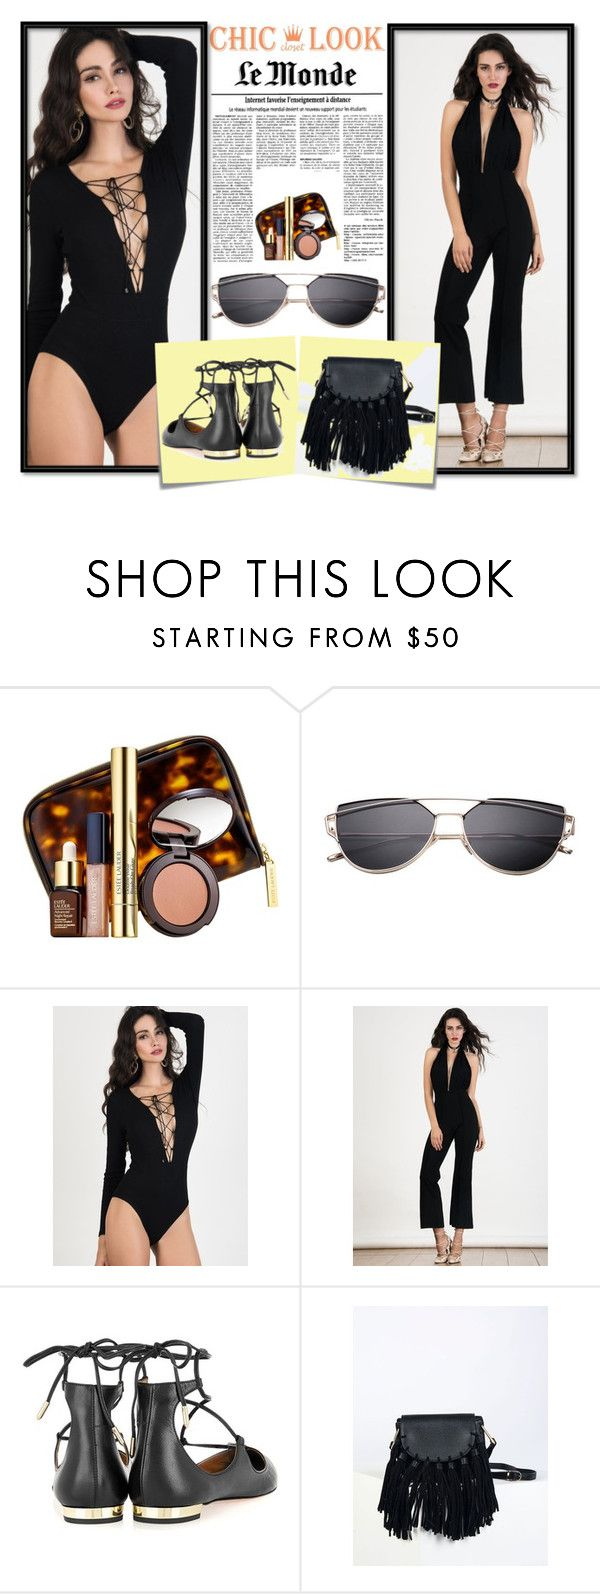 """II - Chiclookcloset"" by jasminica-6 ❤ liked on Polyvore featuring Estée Lauder and Post-It"